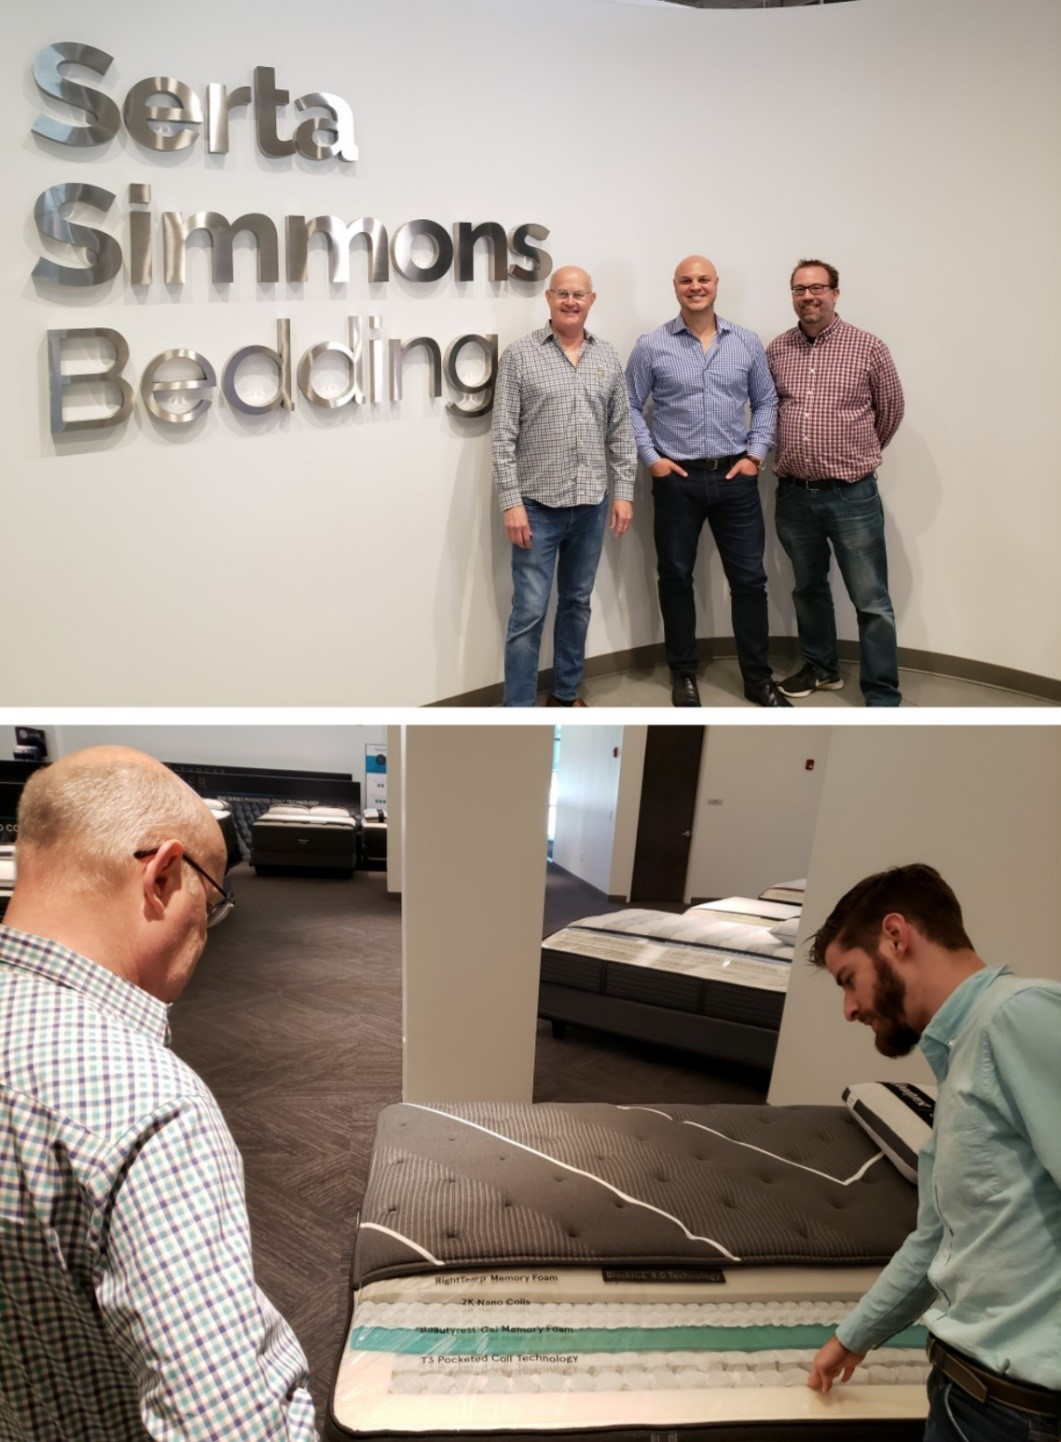 The Thermo-Flex team visits with Serta Simmons Bedding executives to discuss partnership opportunities